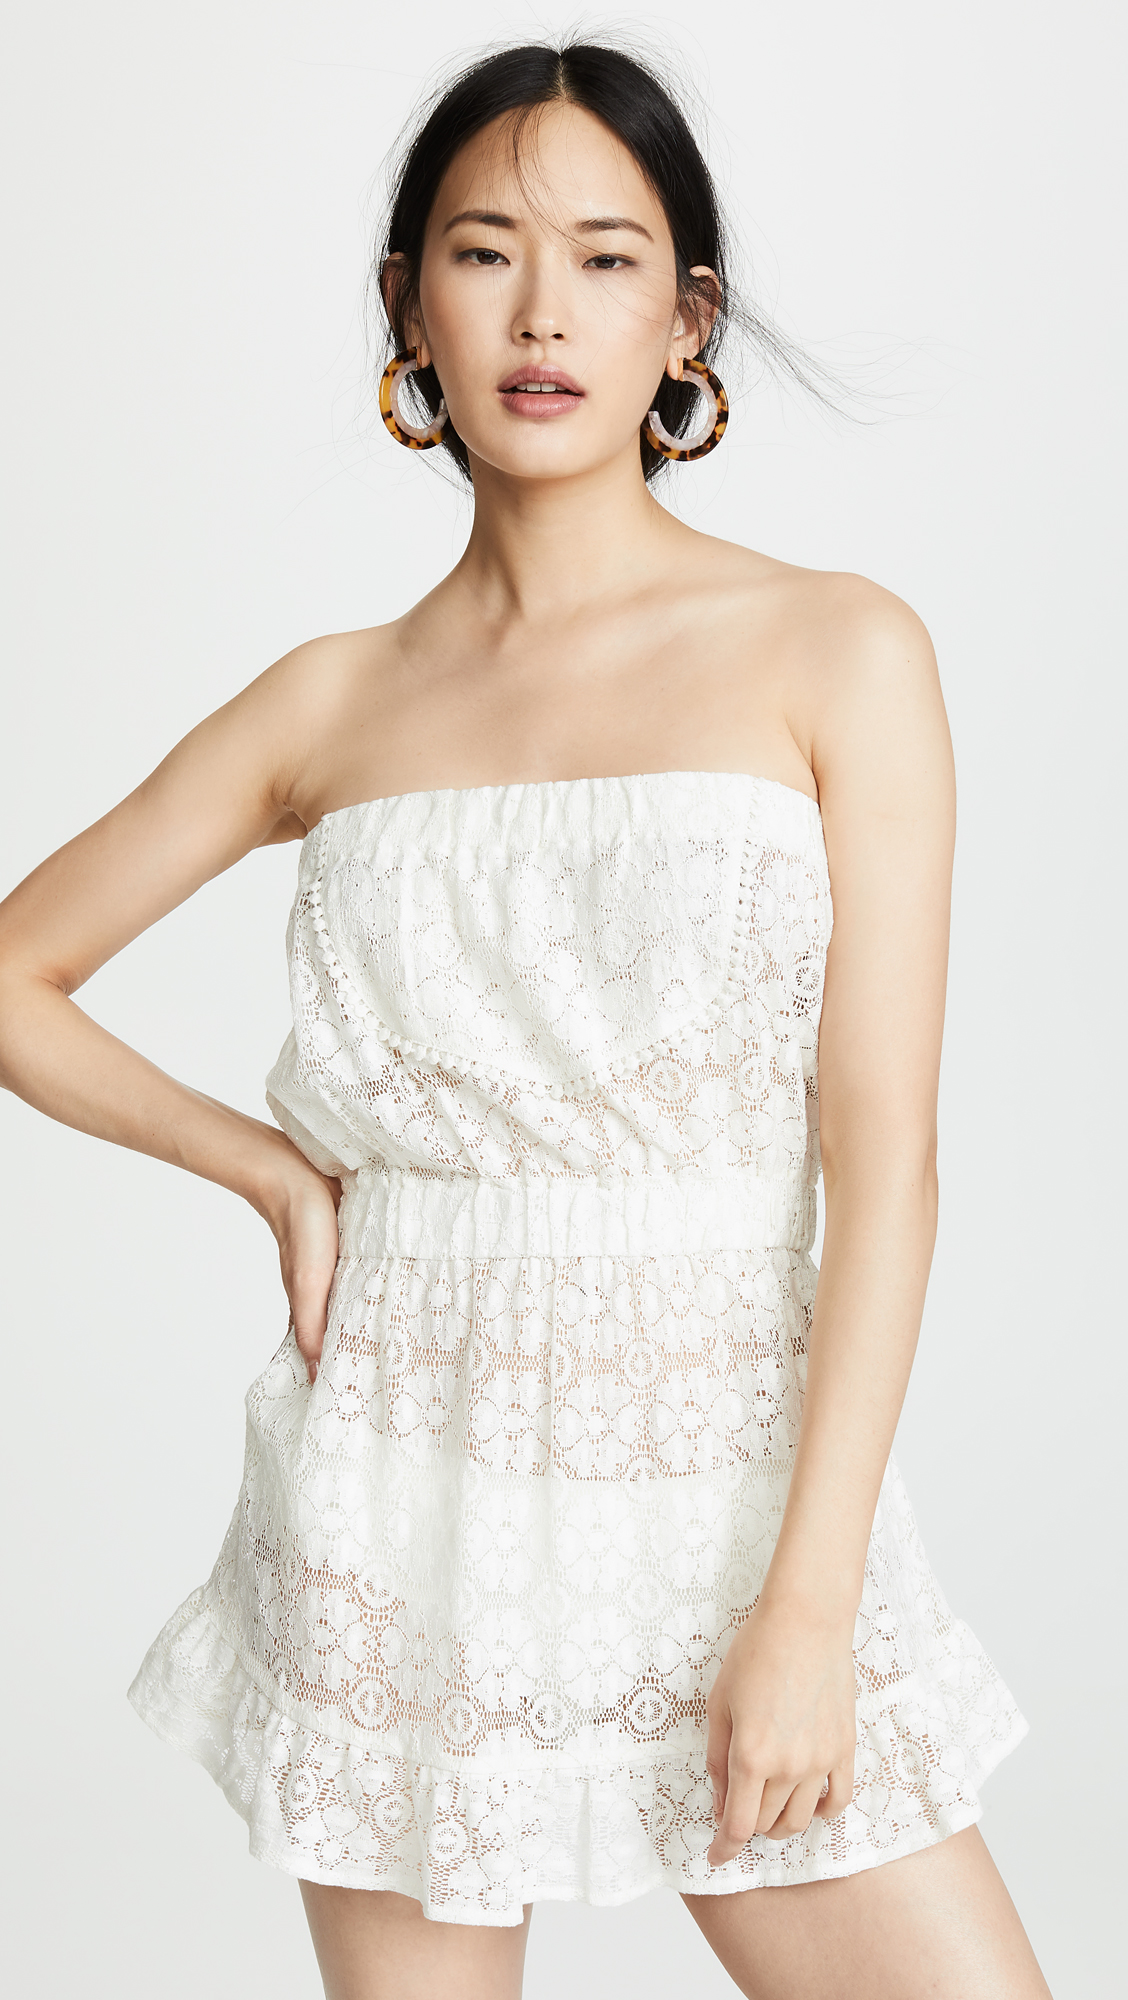 A Lace Cover Up - This is perhaps my favorite cover up I've ever laid eyes on! It's so elegant yet playful all at once—a beautiful piece to take you from the beach to lunch on the patio.